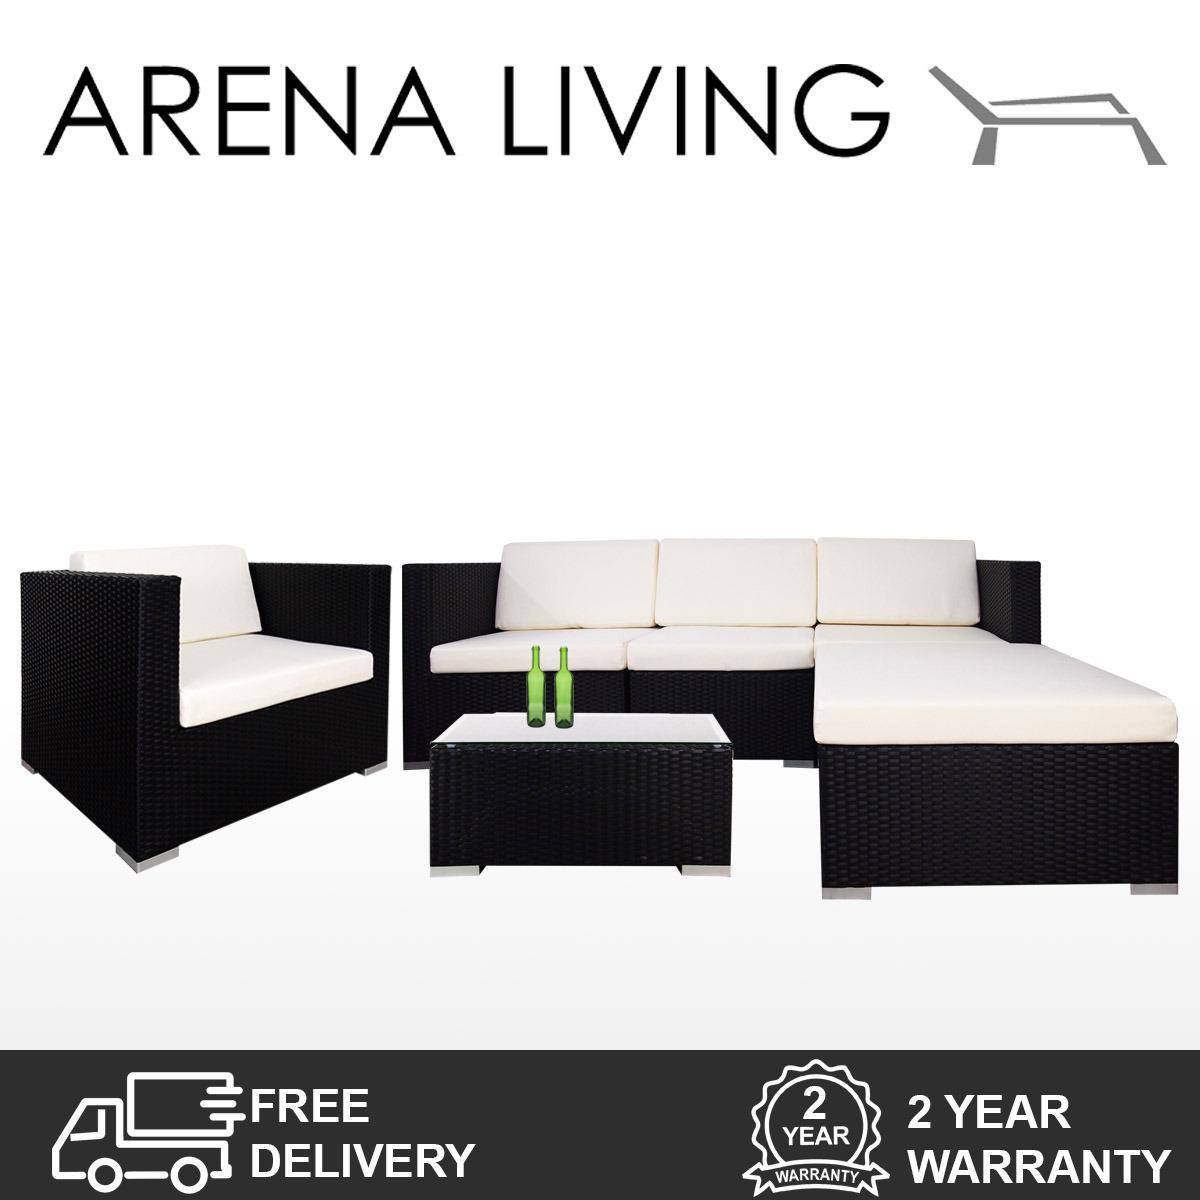 Compare Price Arena Living Summer Outdoor Modular Sofa Set Ii White Cushions On Singapore